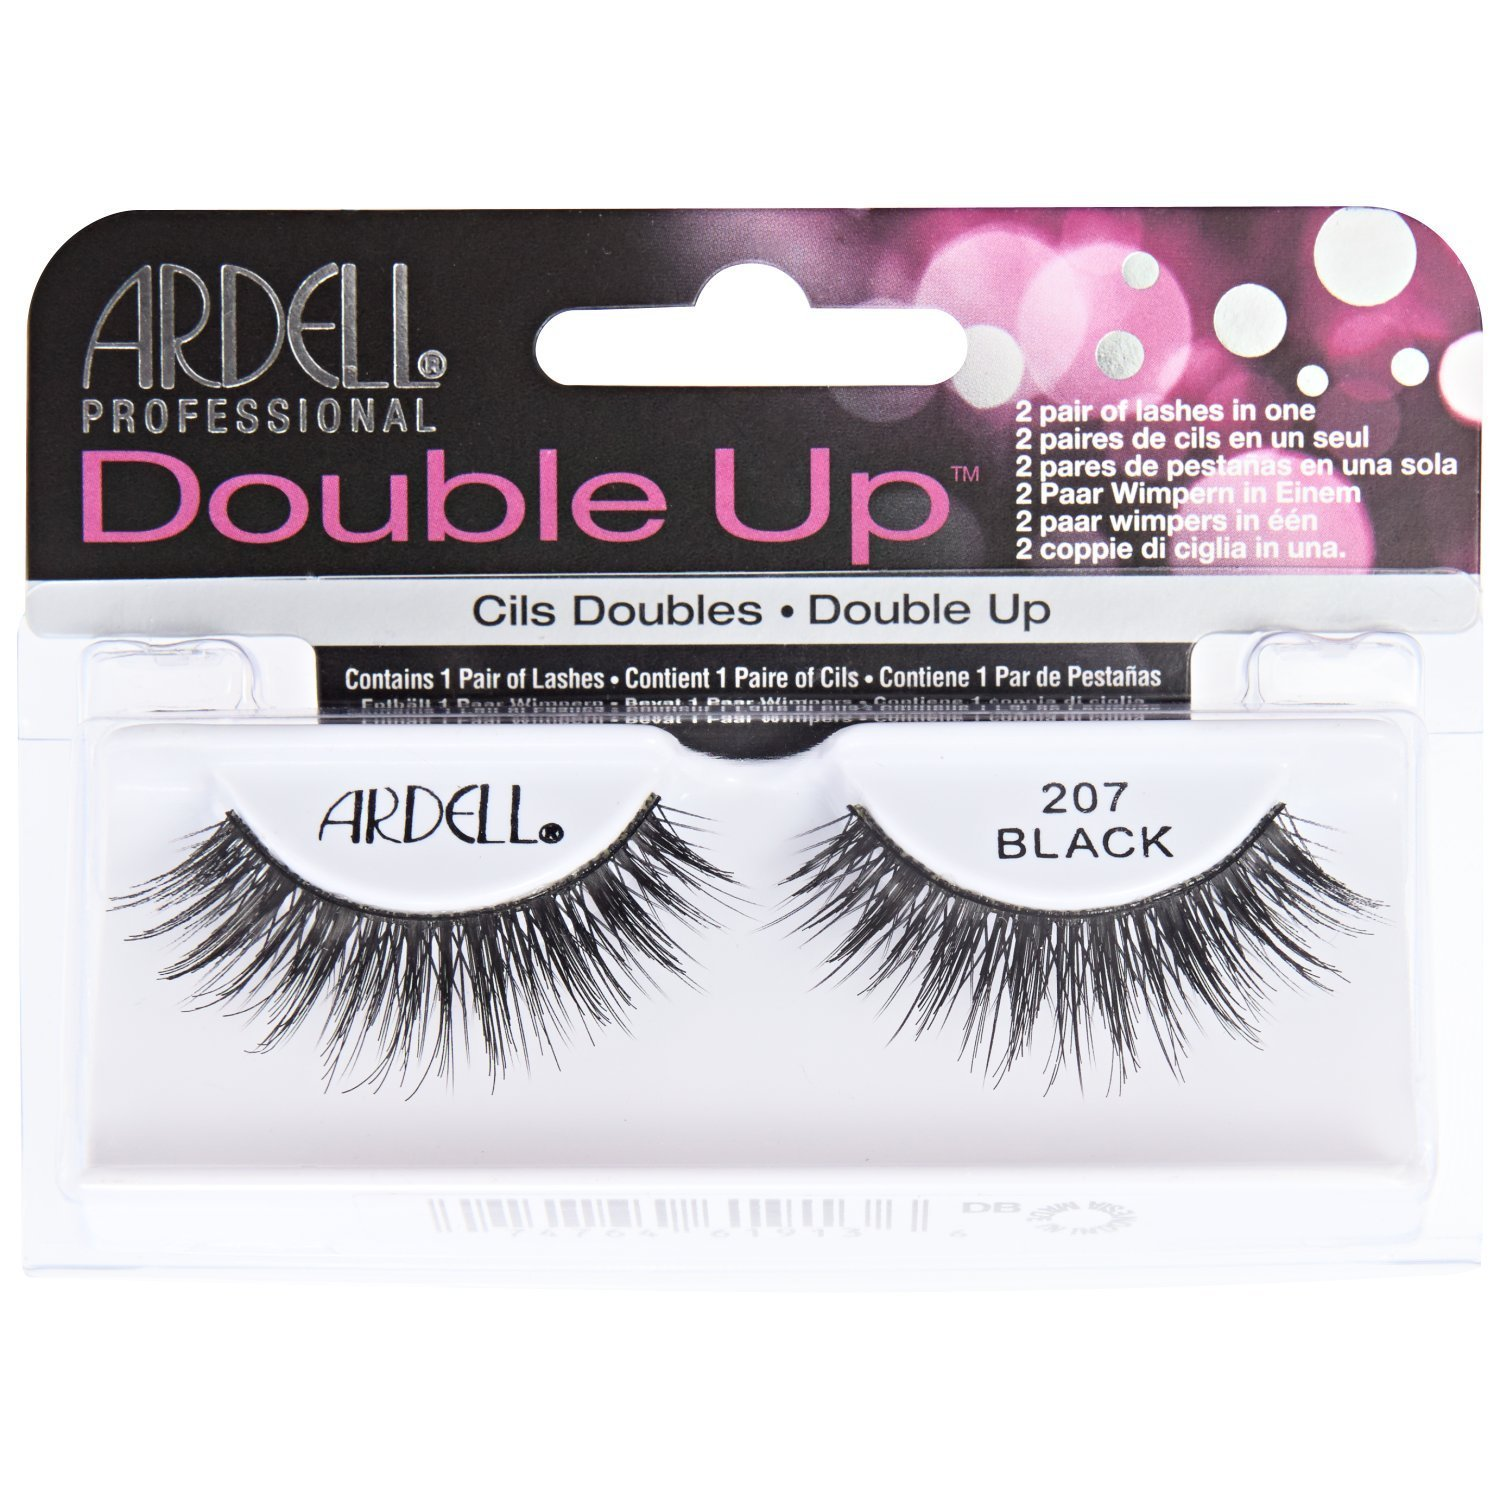 Cheap Ardell Lashes Canada Find Ardell Lashes Canada Deals On Line